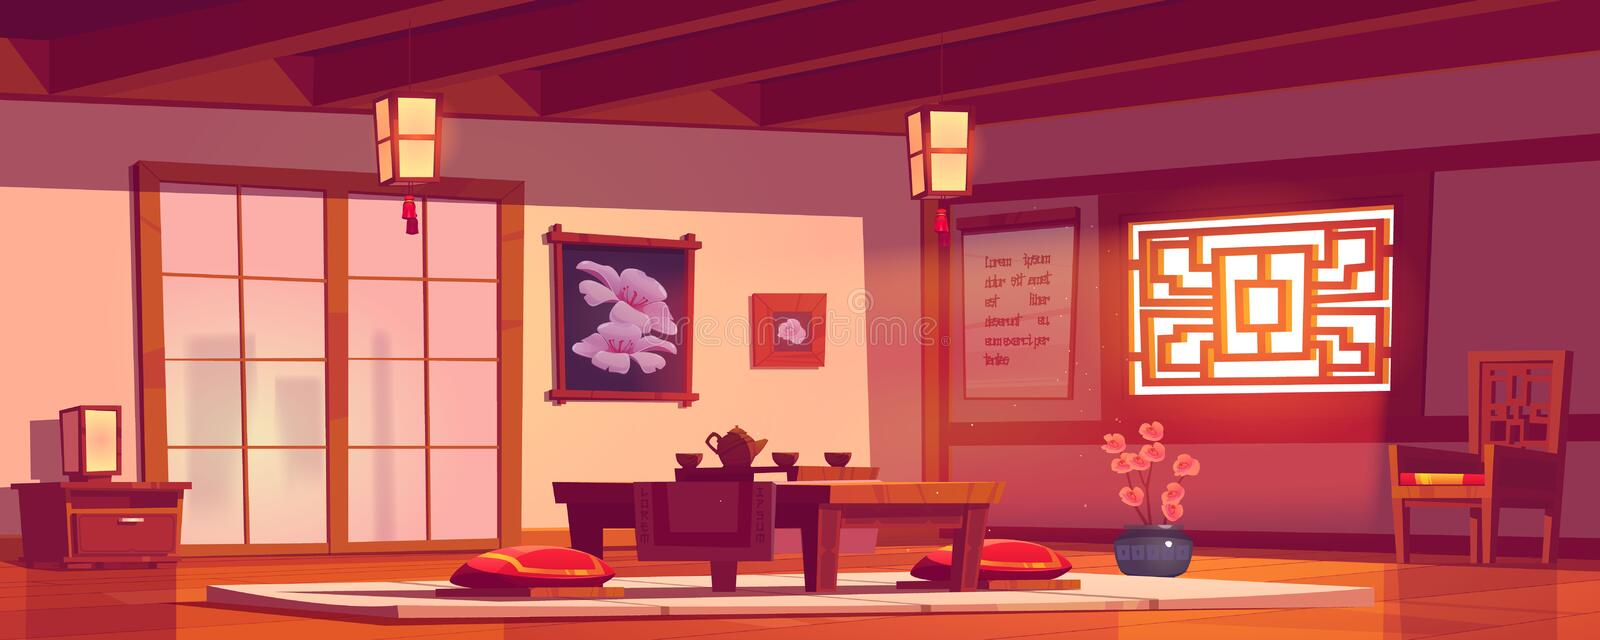 Chinese Restaurant Cartoon Stock Illustrations 5 519 Chinese Restaurant Cartoon Stock Illustrations Vectors Clipart Dreamstime